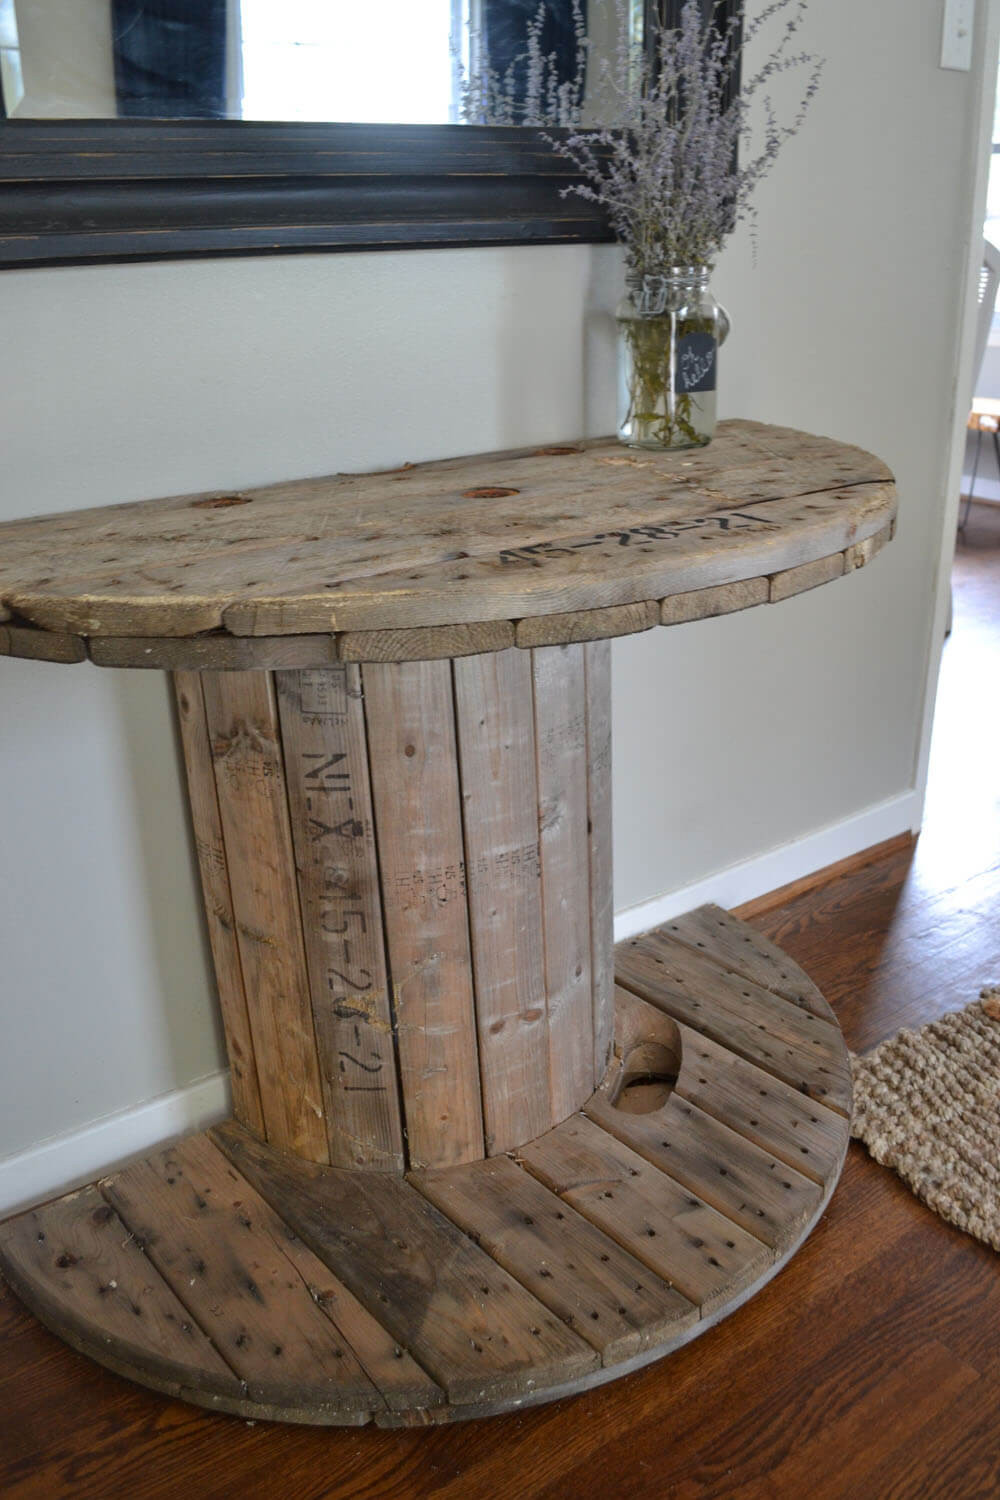 Best ideas about DIY Tabletop Ideas . Save or Pin 15 Fabulous DIY Entryway Table Ideas Now.